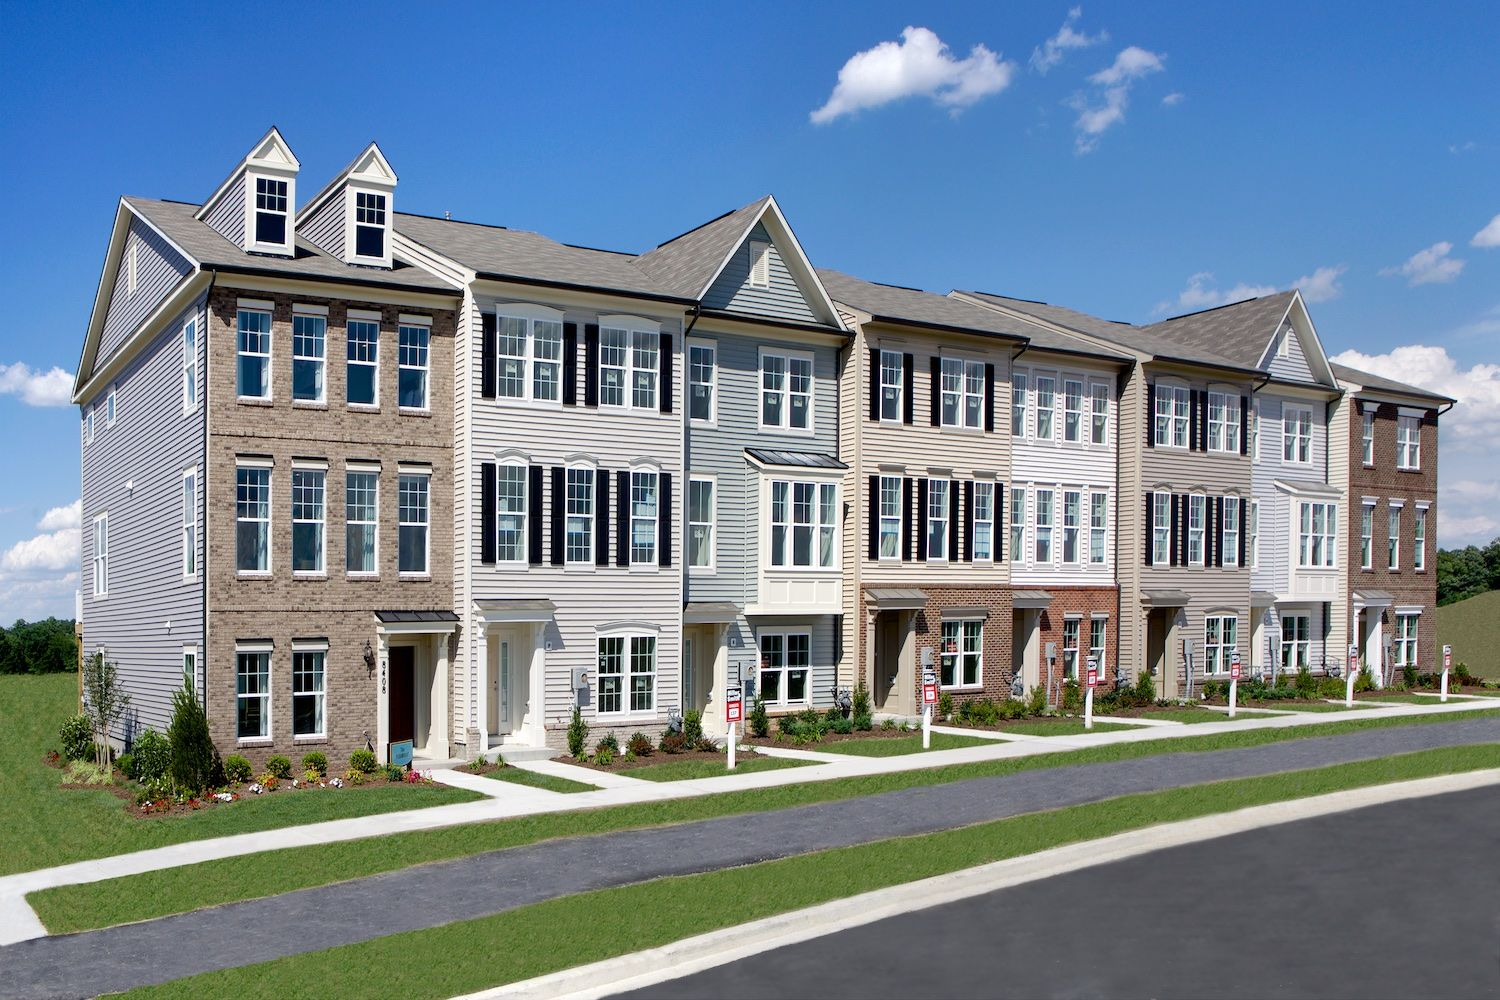 'Unique la famille' building or community at 'Tallyn Ridge 8401 Pine Bluff Road Frederick, Maryland 21704 United States'